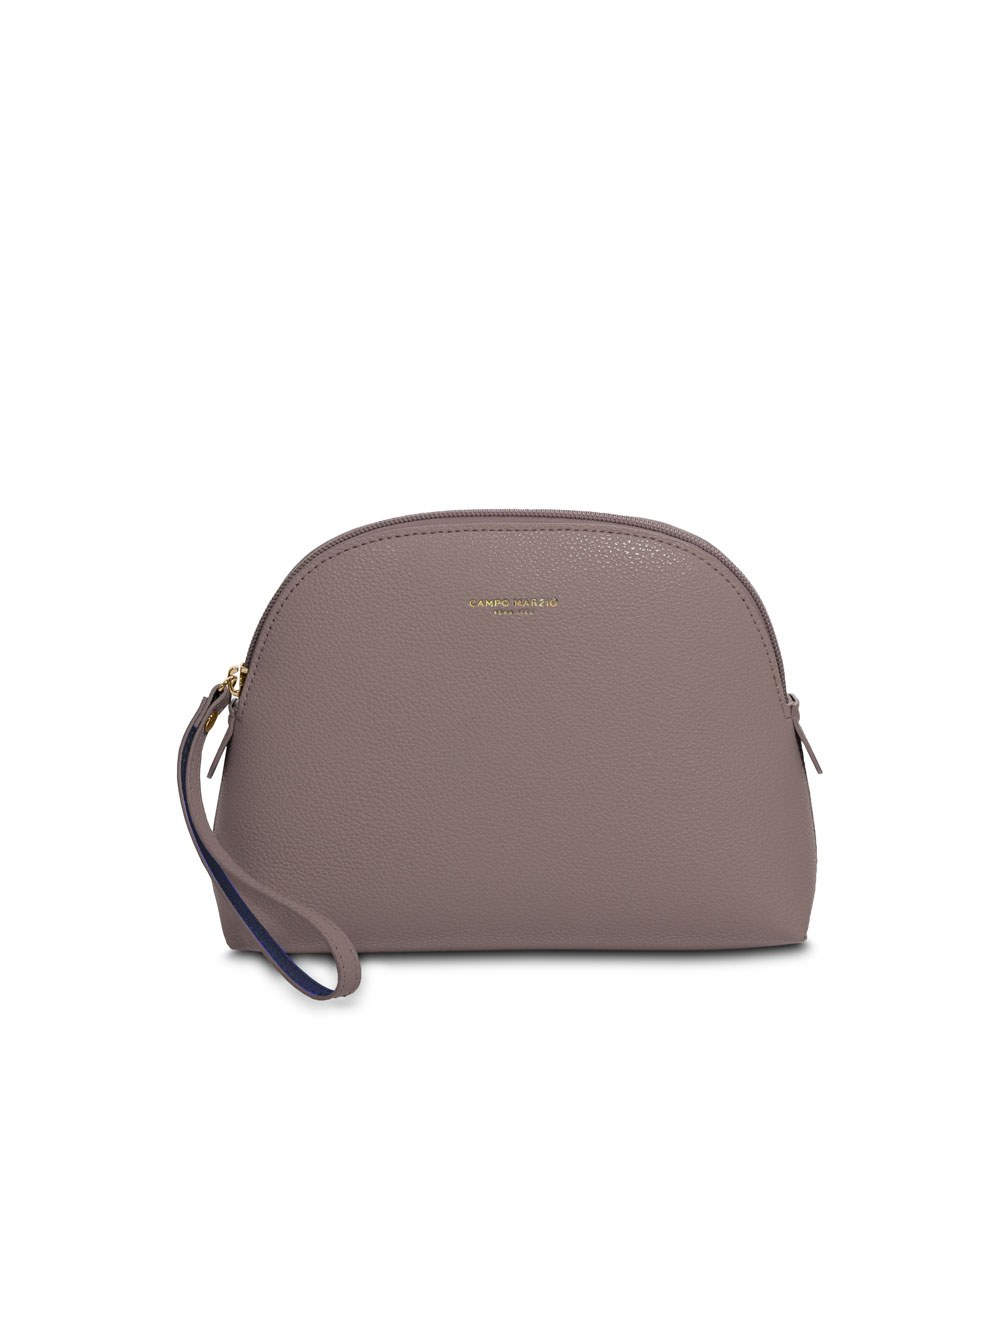 Bag with wrist strap small - Sand